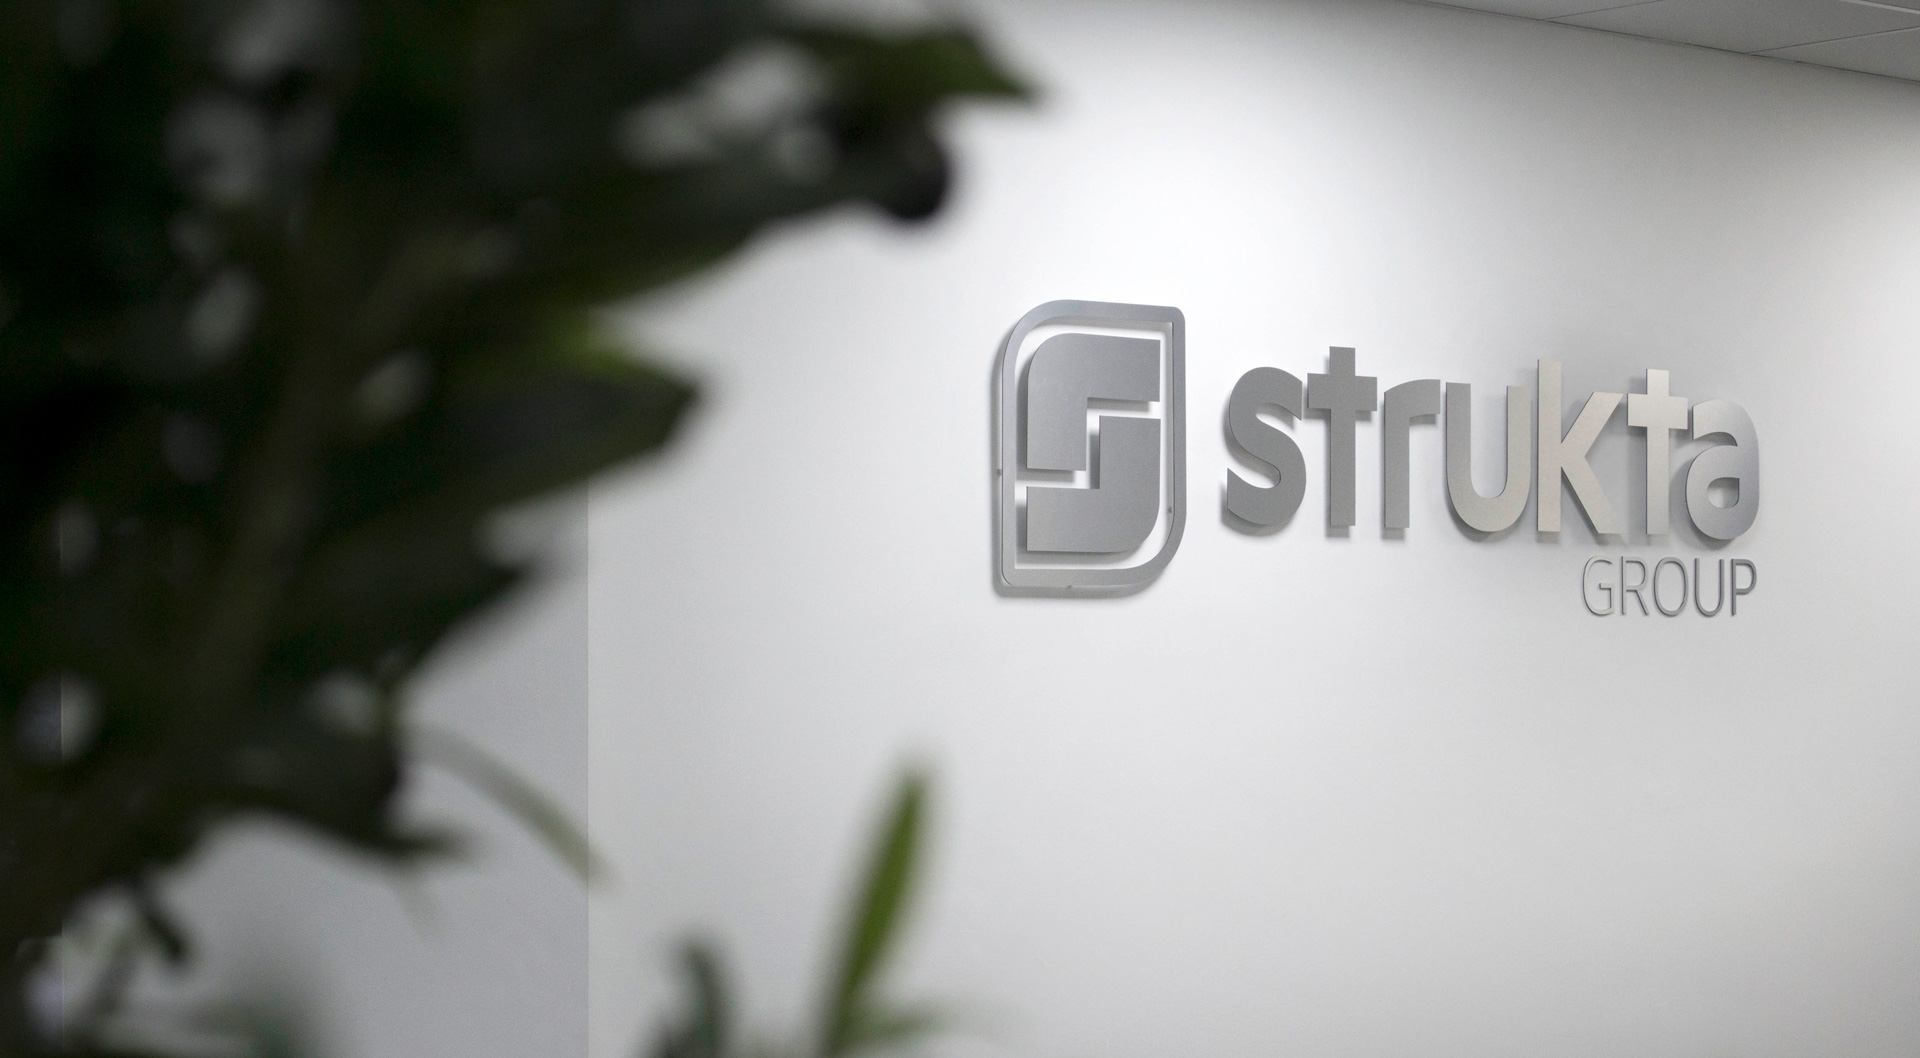 strukta logo in the office